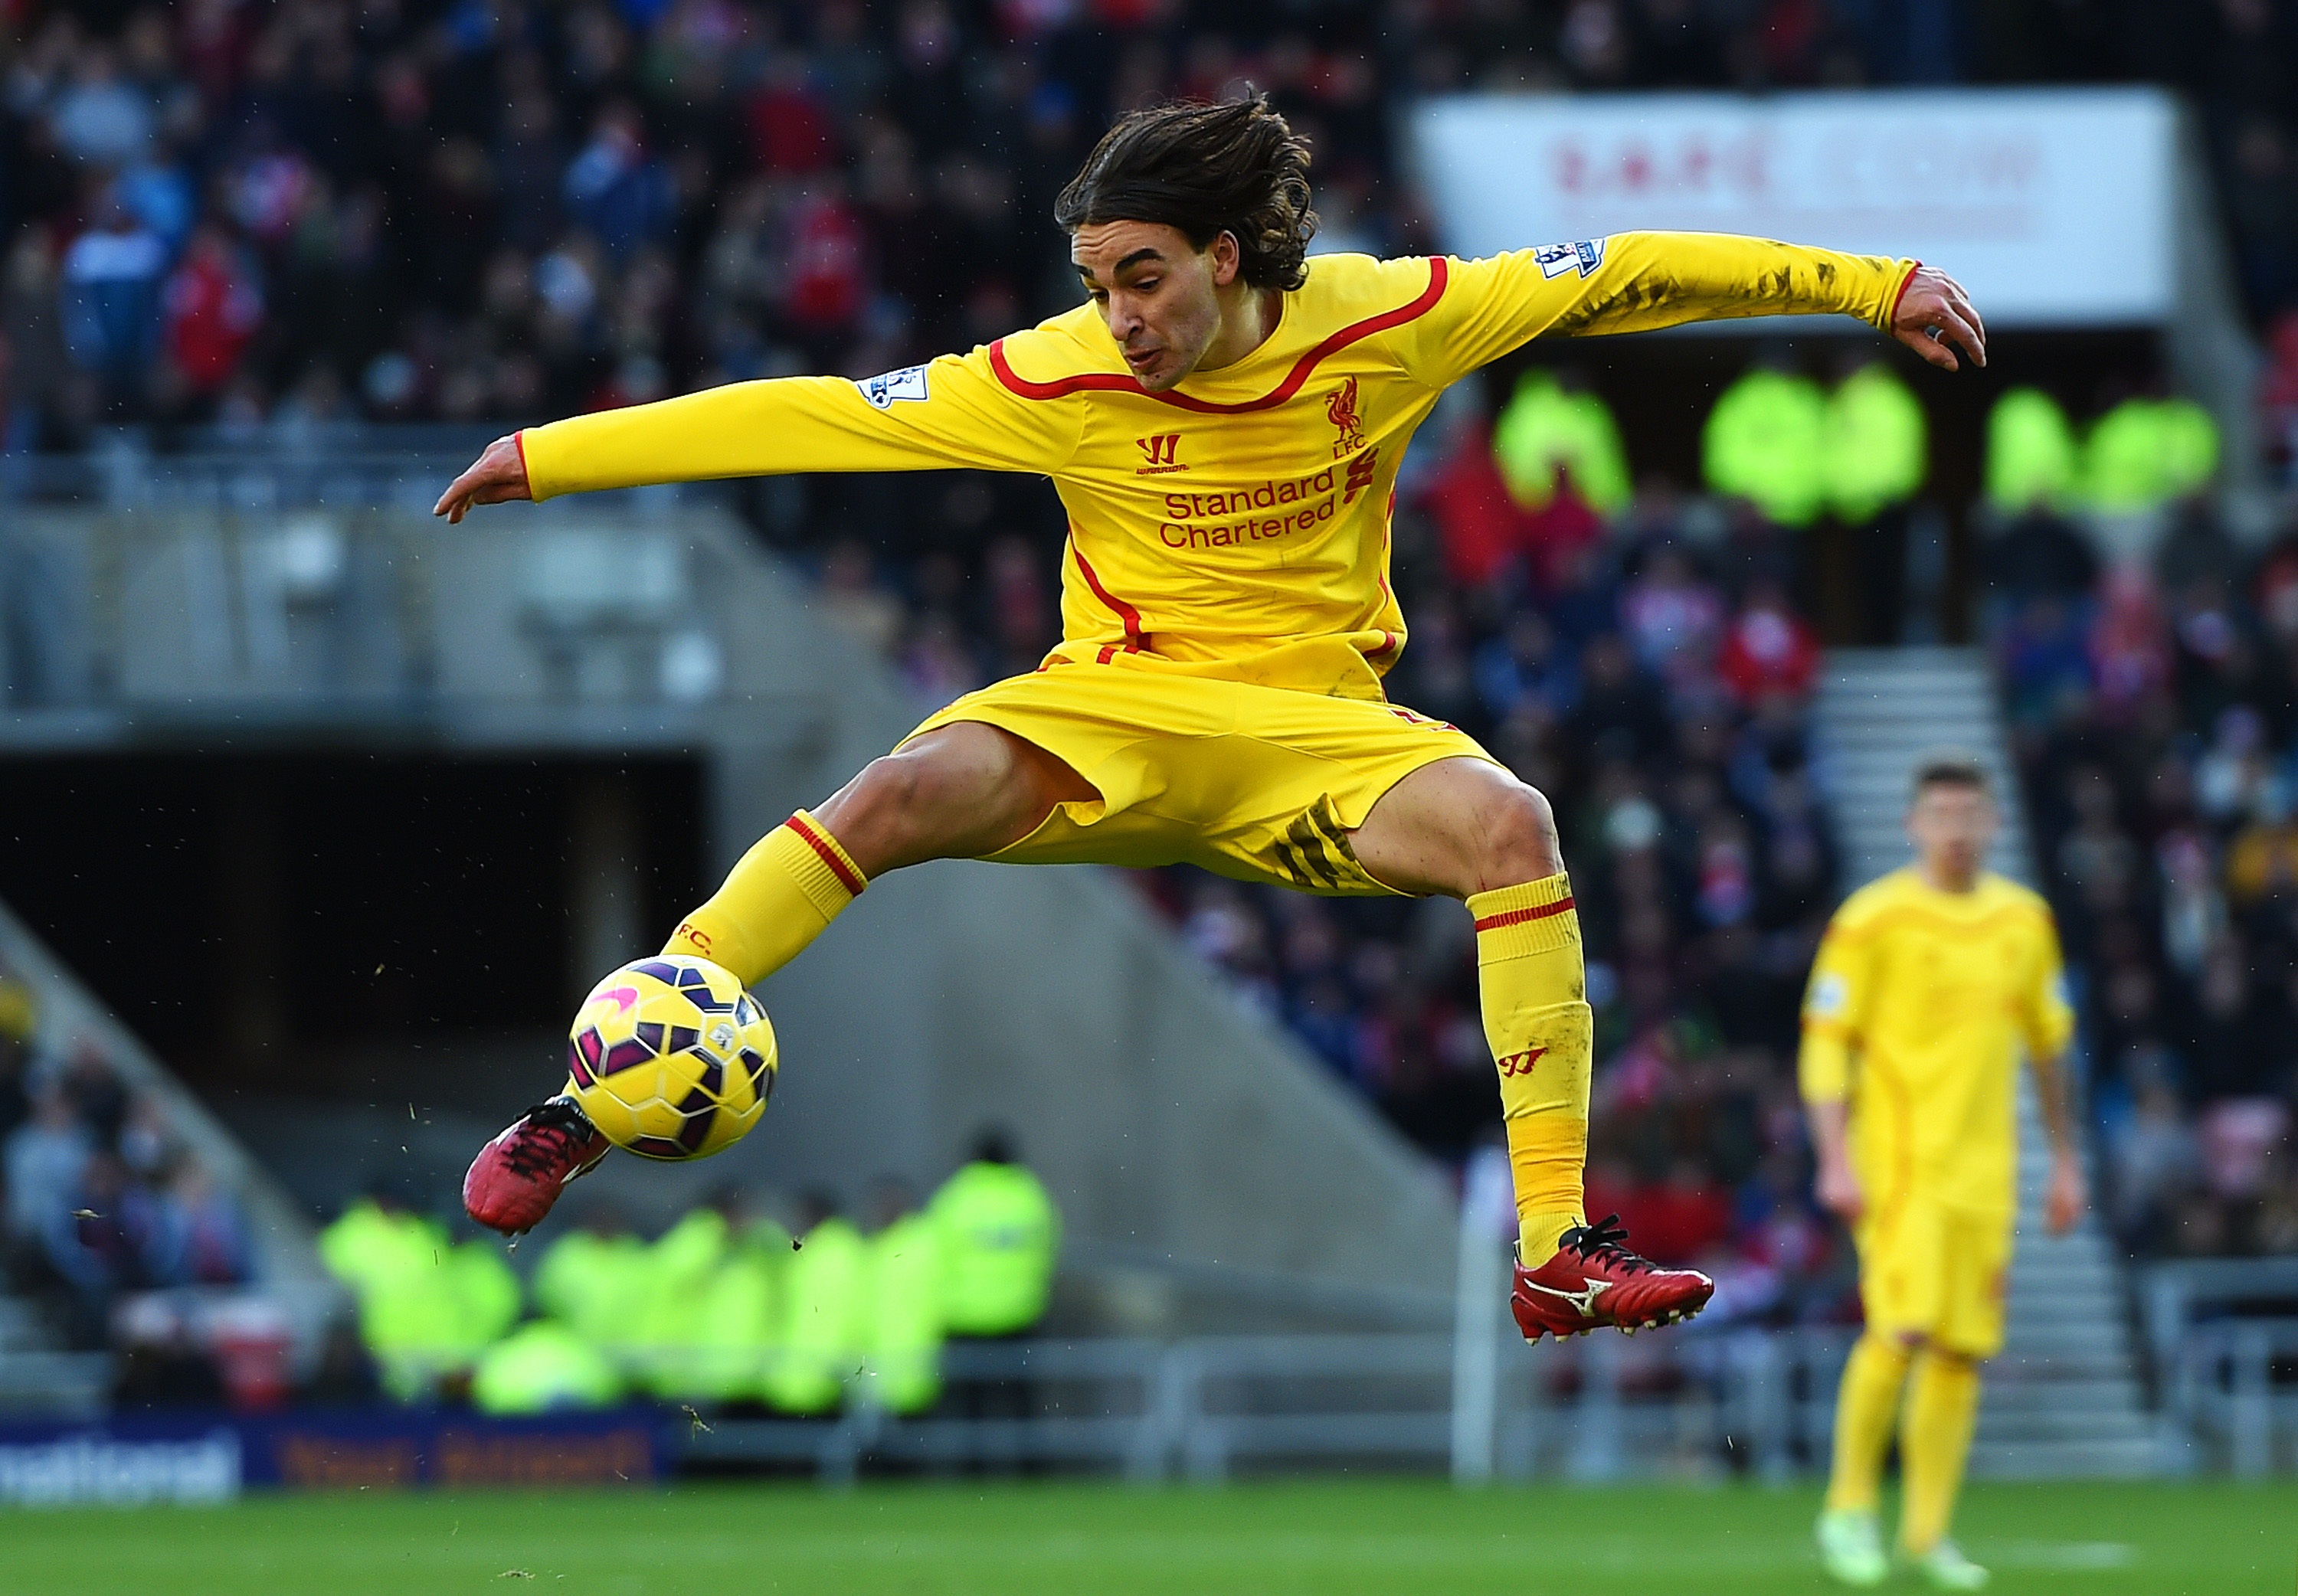 Fulham sign winger Lazar Markovic from Liverpool on free transfer